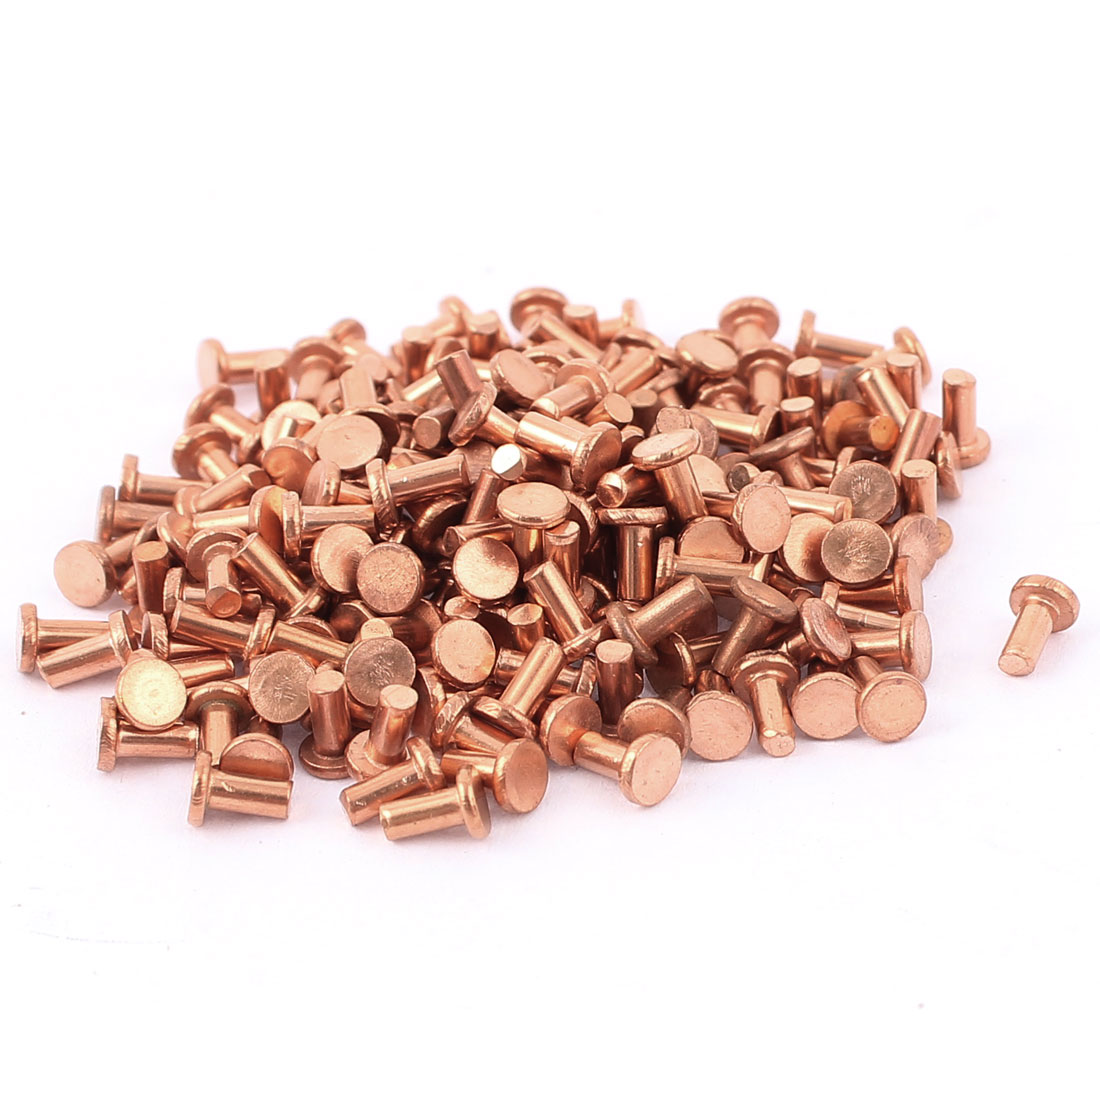 "200 Pcs 5/64"" Diameter 5/32"" Long Shank Flat Head Bolts Copper Solid Rivets Fasteners"